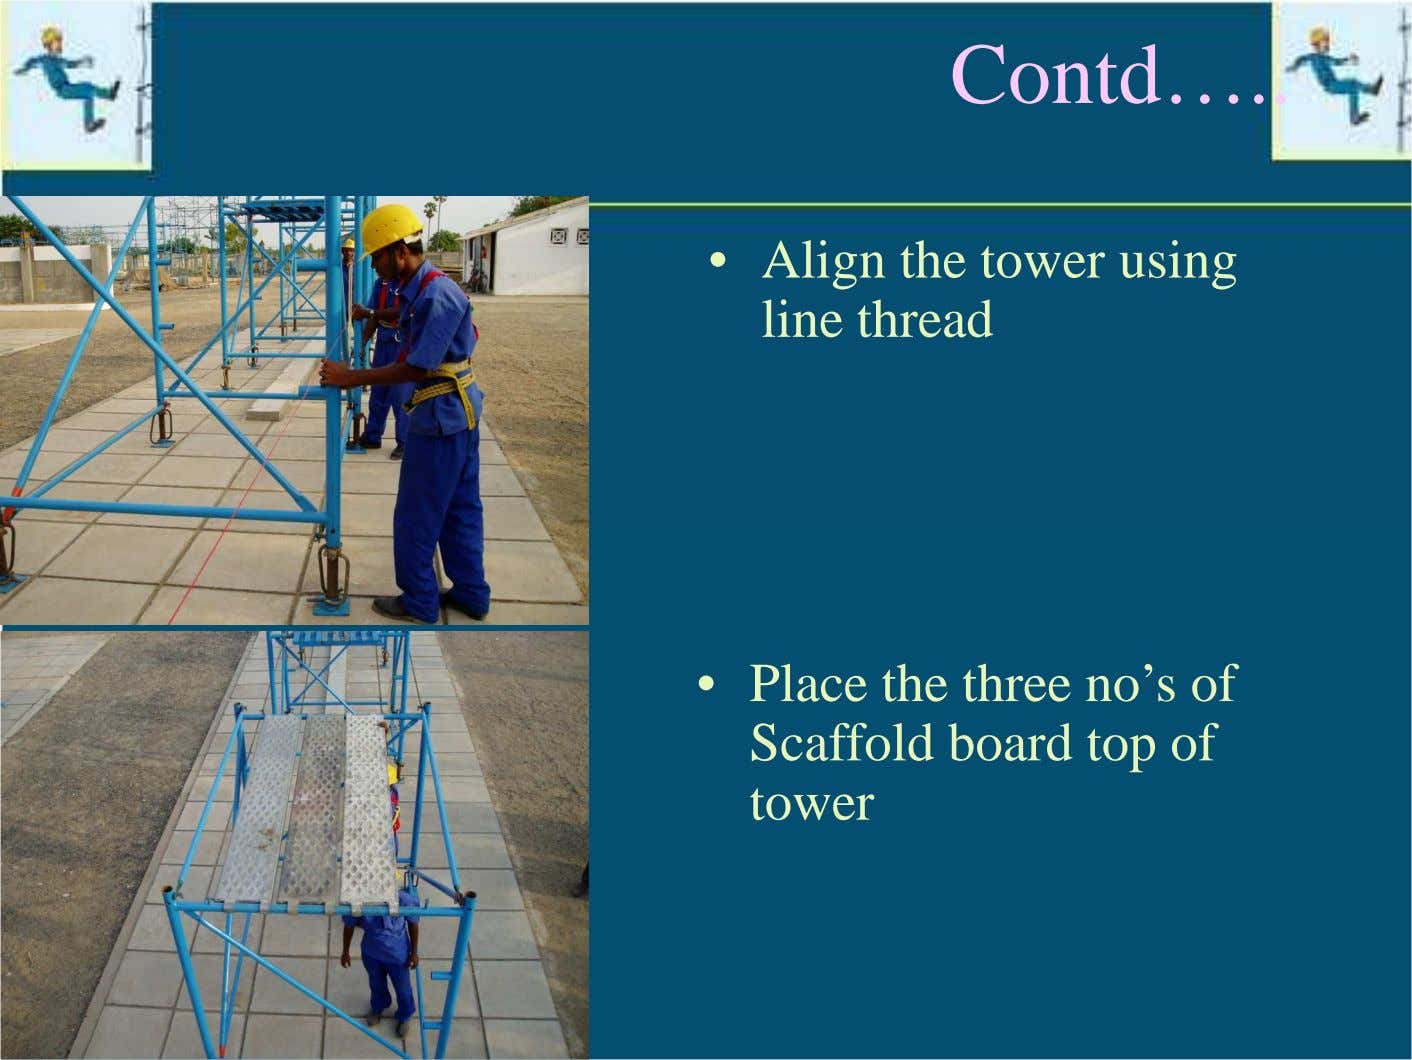 Contd… • Align the tower using line thread • Place the three no's of Scaffold